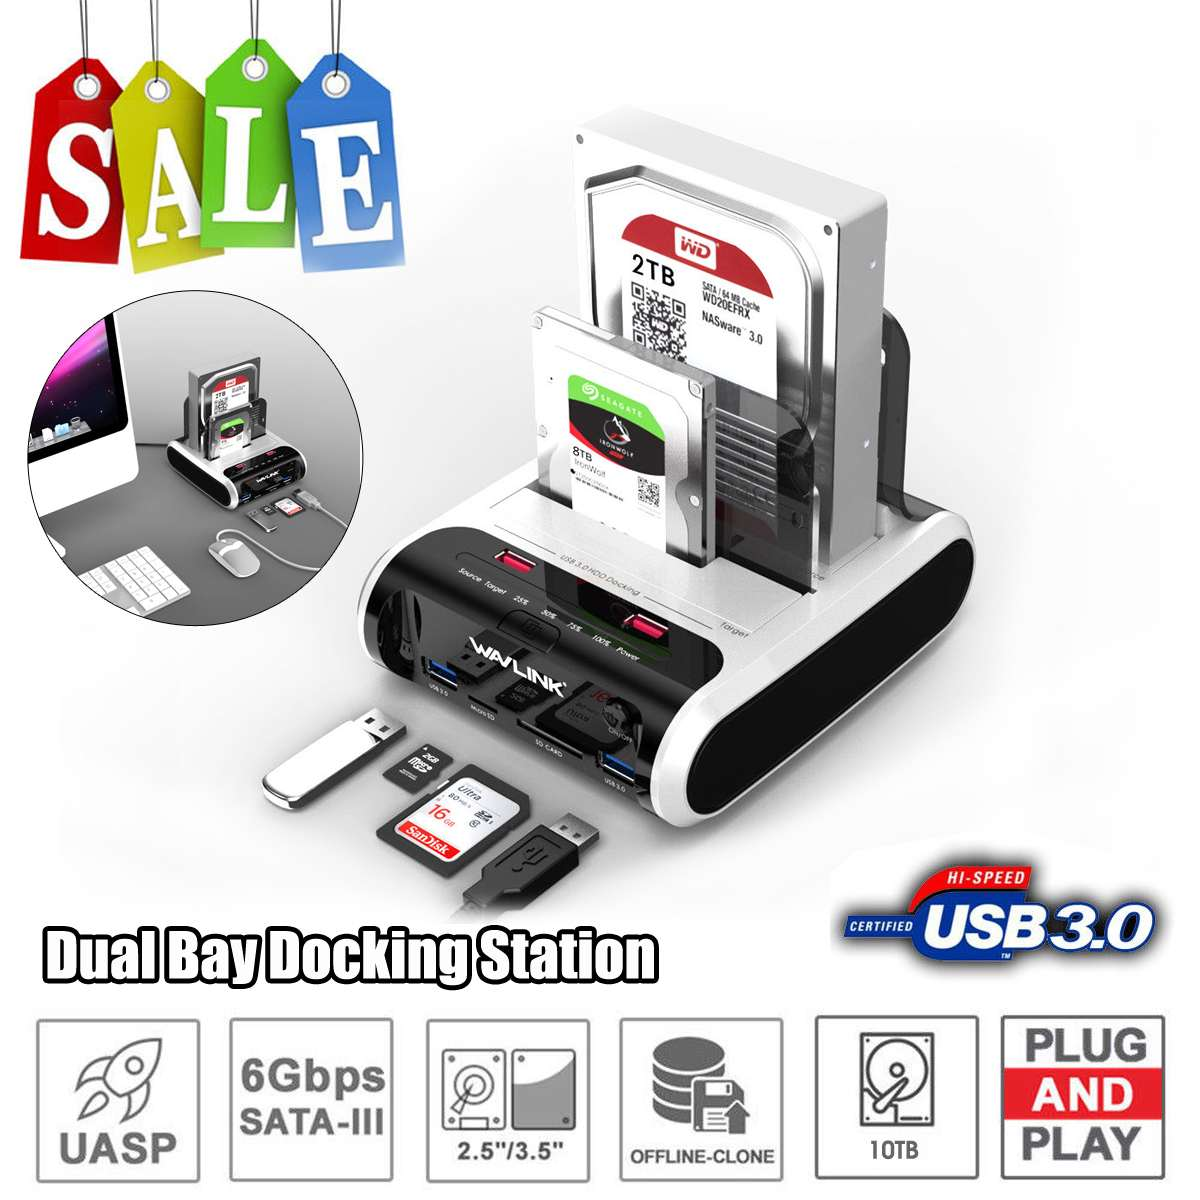 USB 3.0 SATA HDD Docking Station for 2.5 and 3.5 SATA HDD Hard Drive Disk Clone Holder Dock HDD EnclosureUSB 3.0 SATA HDD Docking Station for 2.5 and 3.5 SATA HDD Hard Drive Disk Clone Holder Dock HDD Enclosure